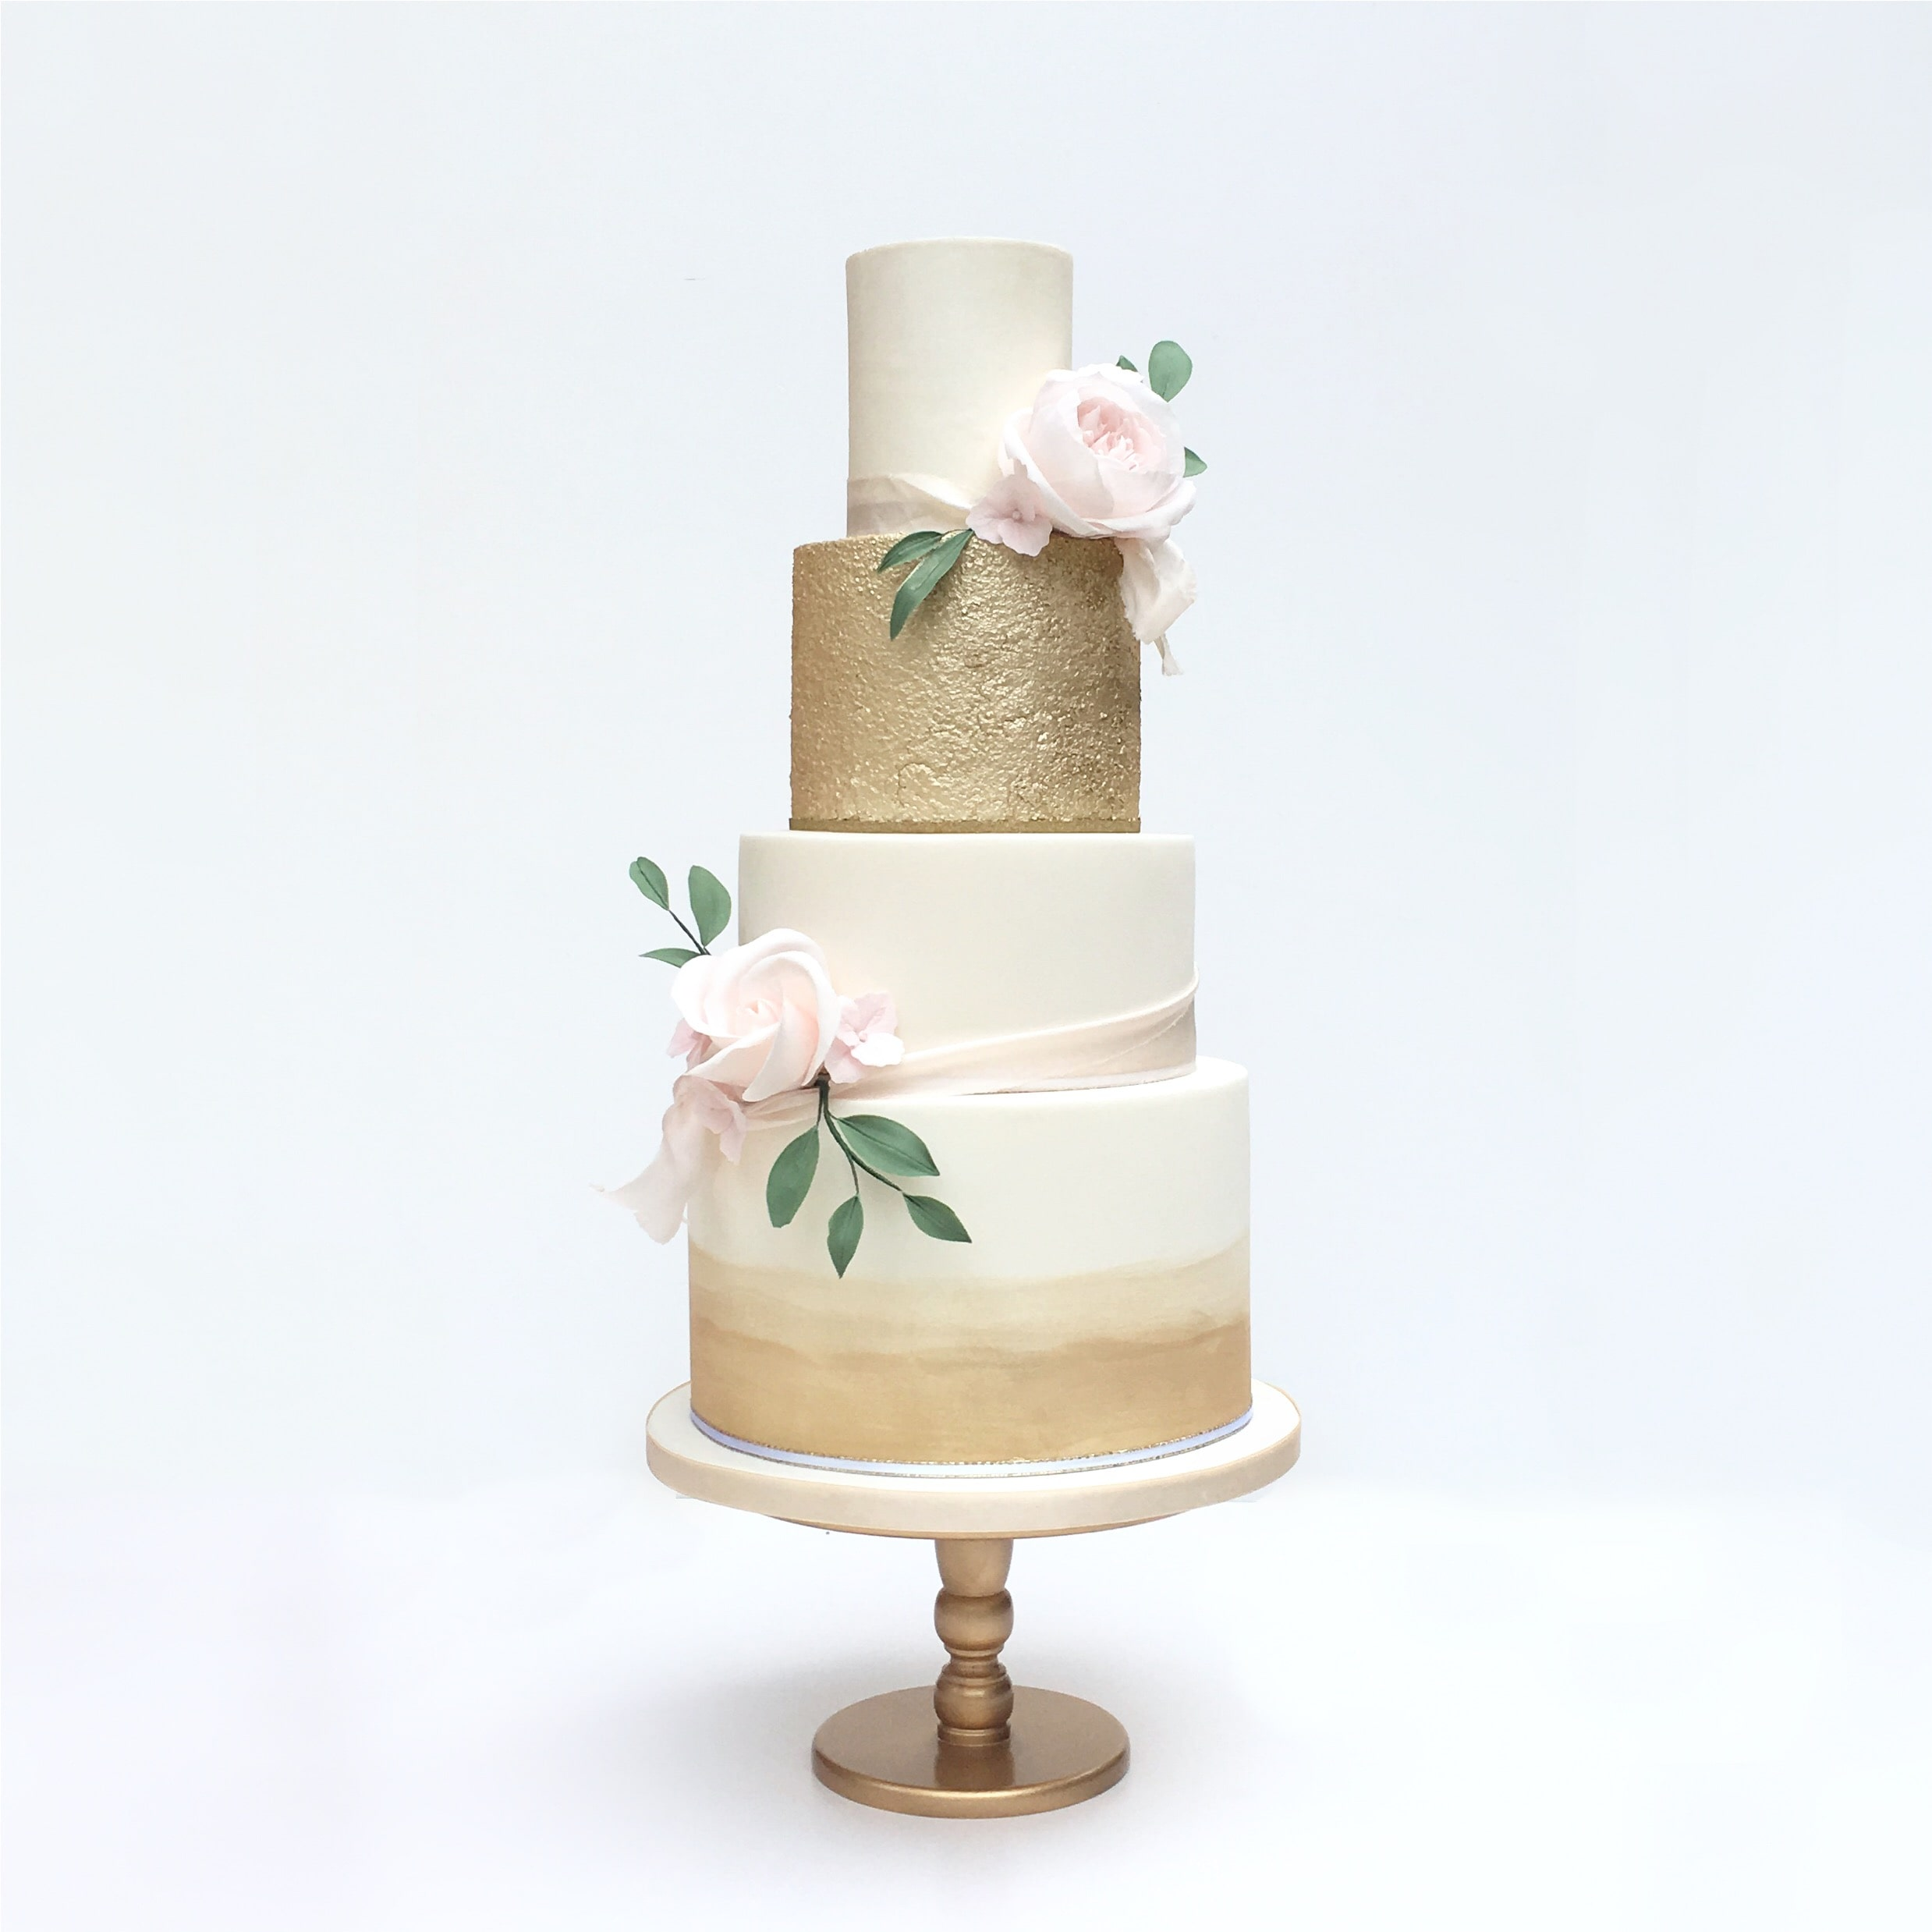 luxury wedding cake in modern gold and blush by Meadowsweet Cakes London wedding cakes